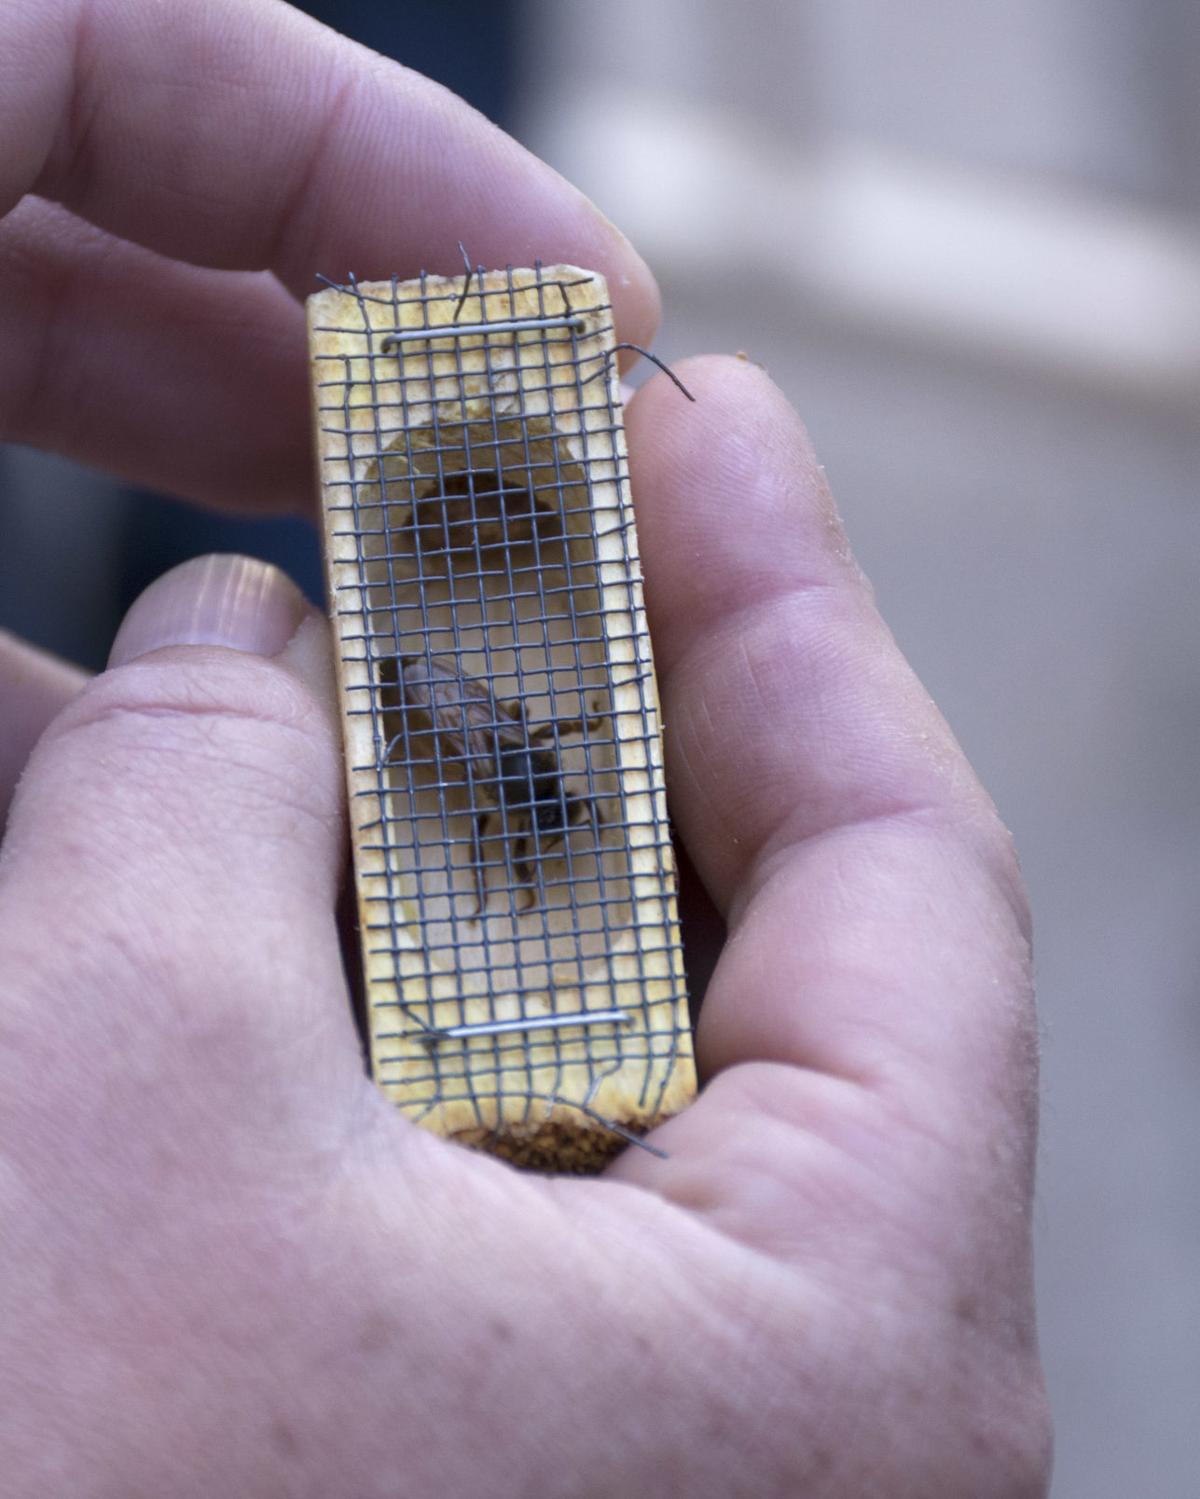 Queen bee removed from Swanson Arch